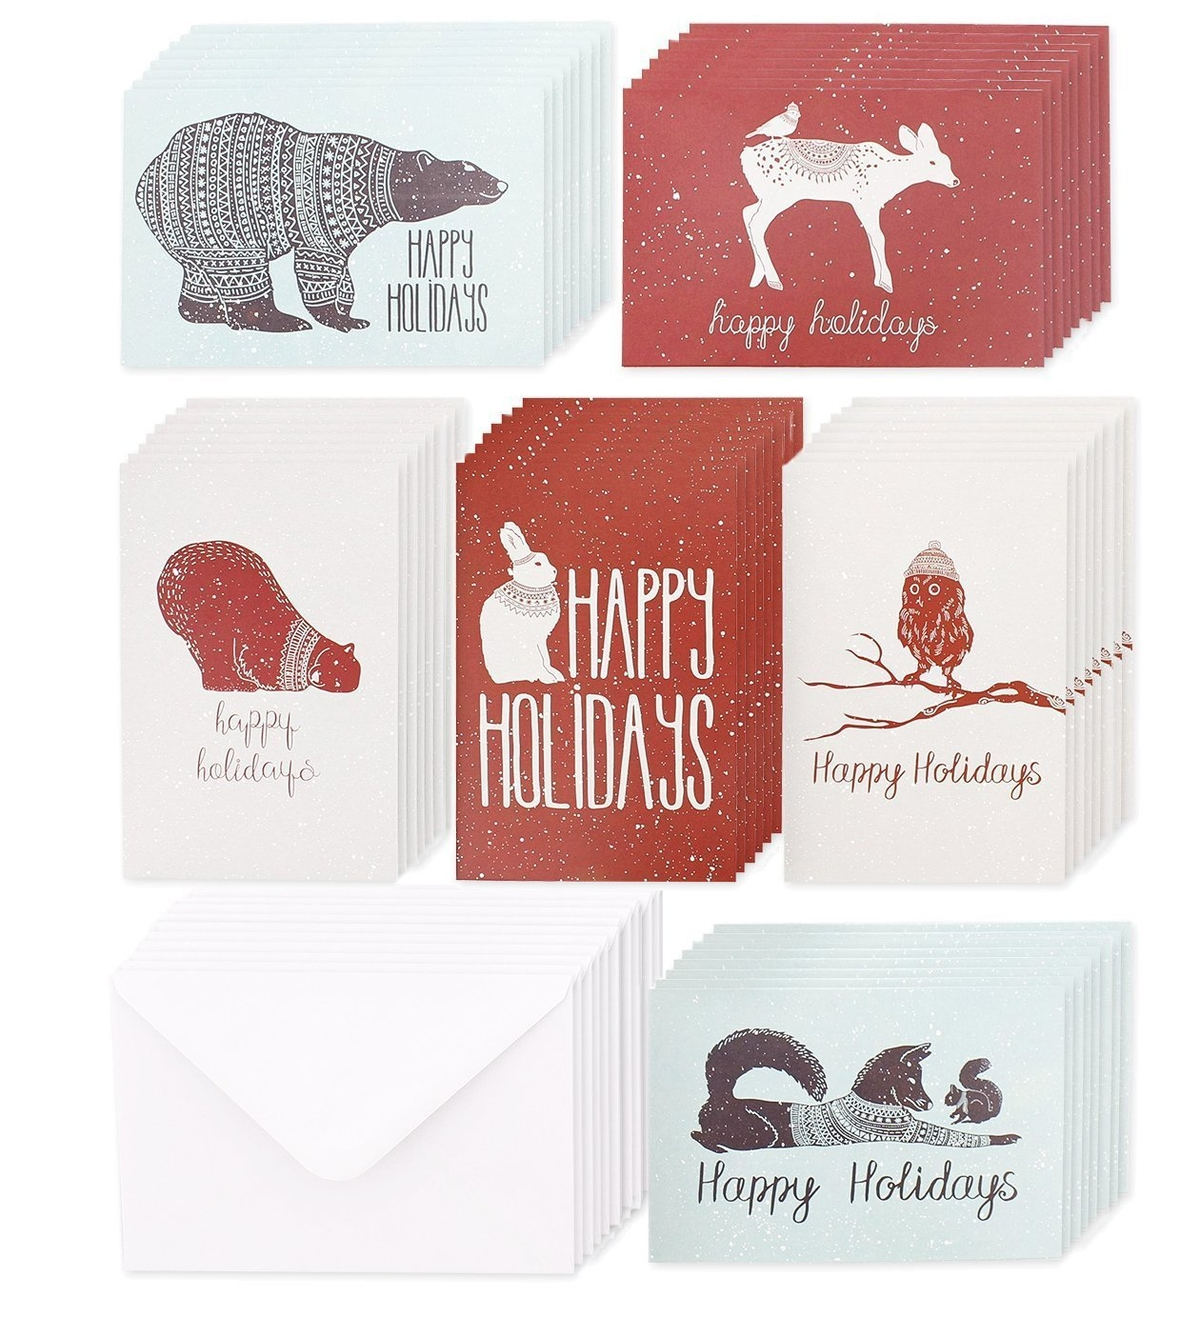 These Holiday Cards Are Too Merry To Miss Dealtown Us Patch